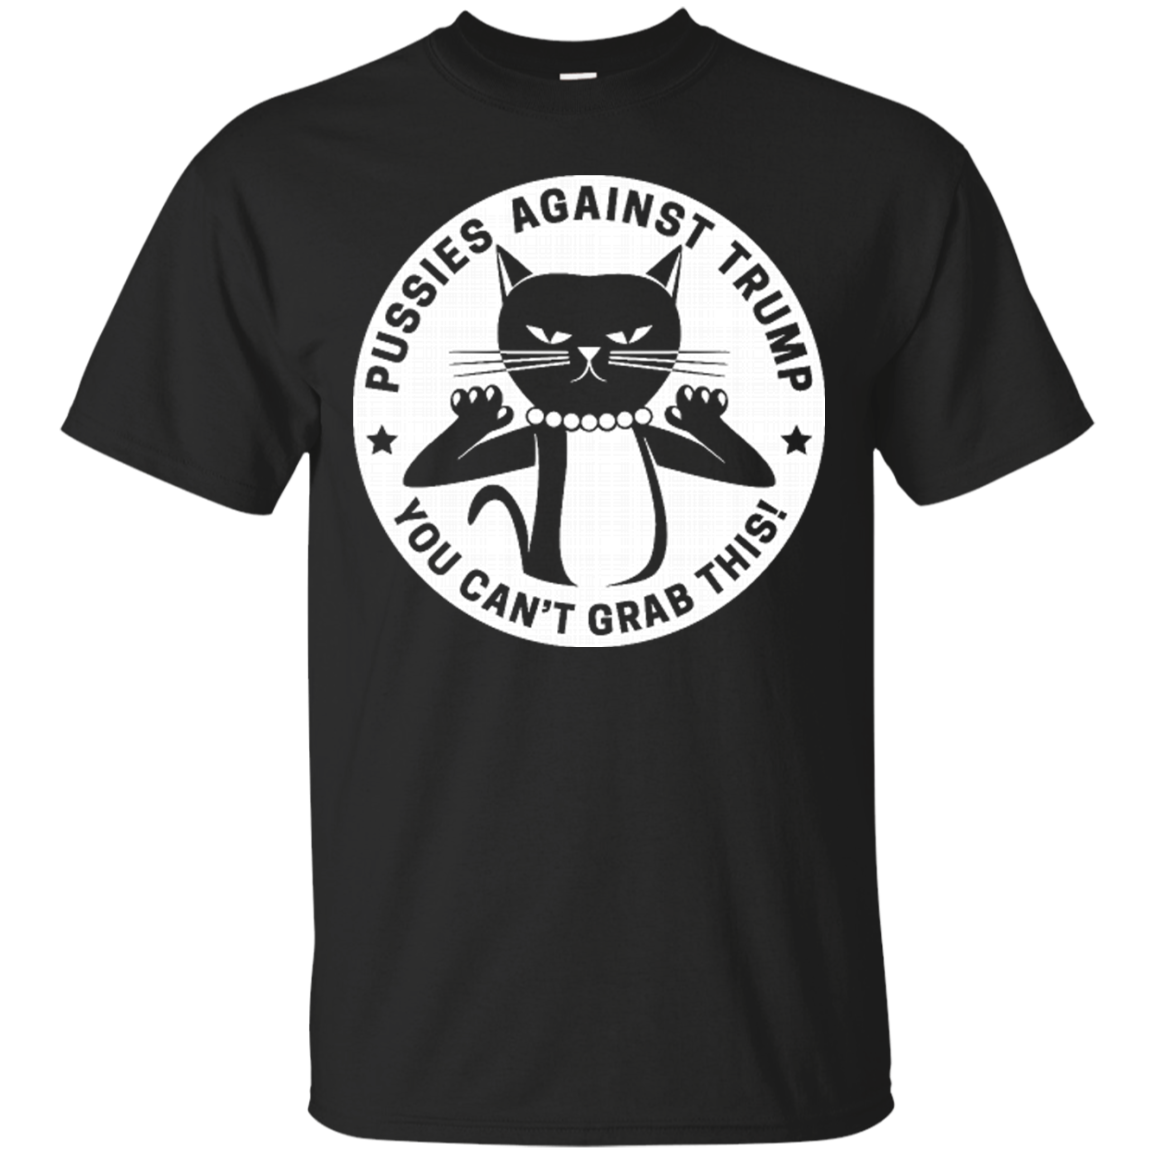 Funny Cat Anti Trump Shirts Pussies Against Trump You Can't Grab This